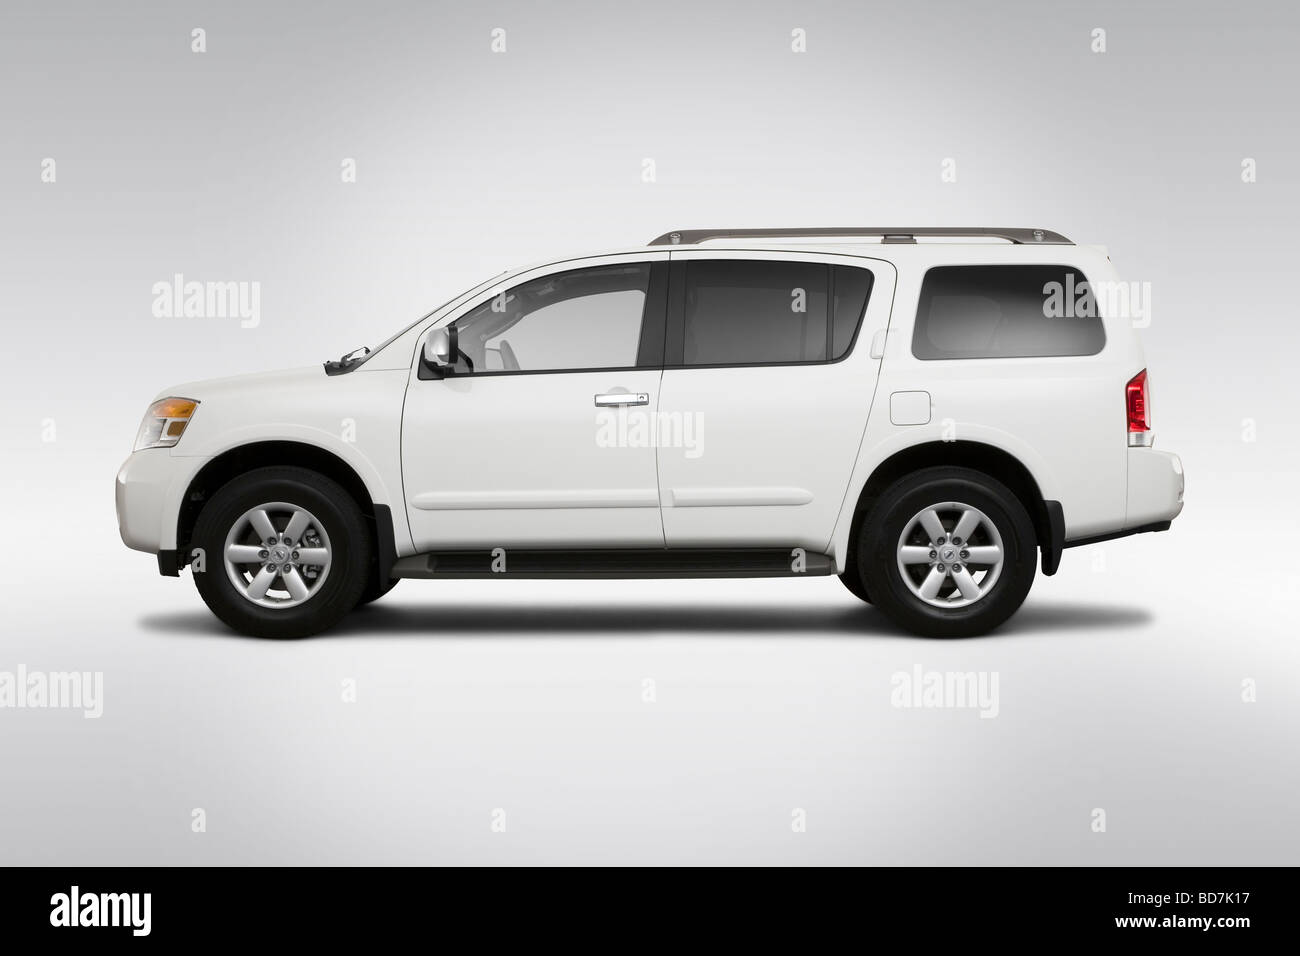 2010 nissan armada se in gray drivers side profile stock photo 2010 nissan armada se in gray drivers side profile vanachro Image collections